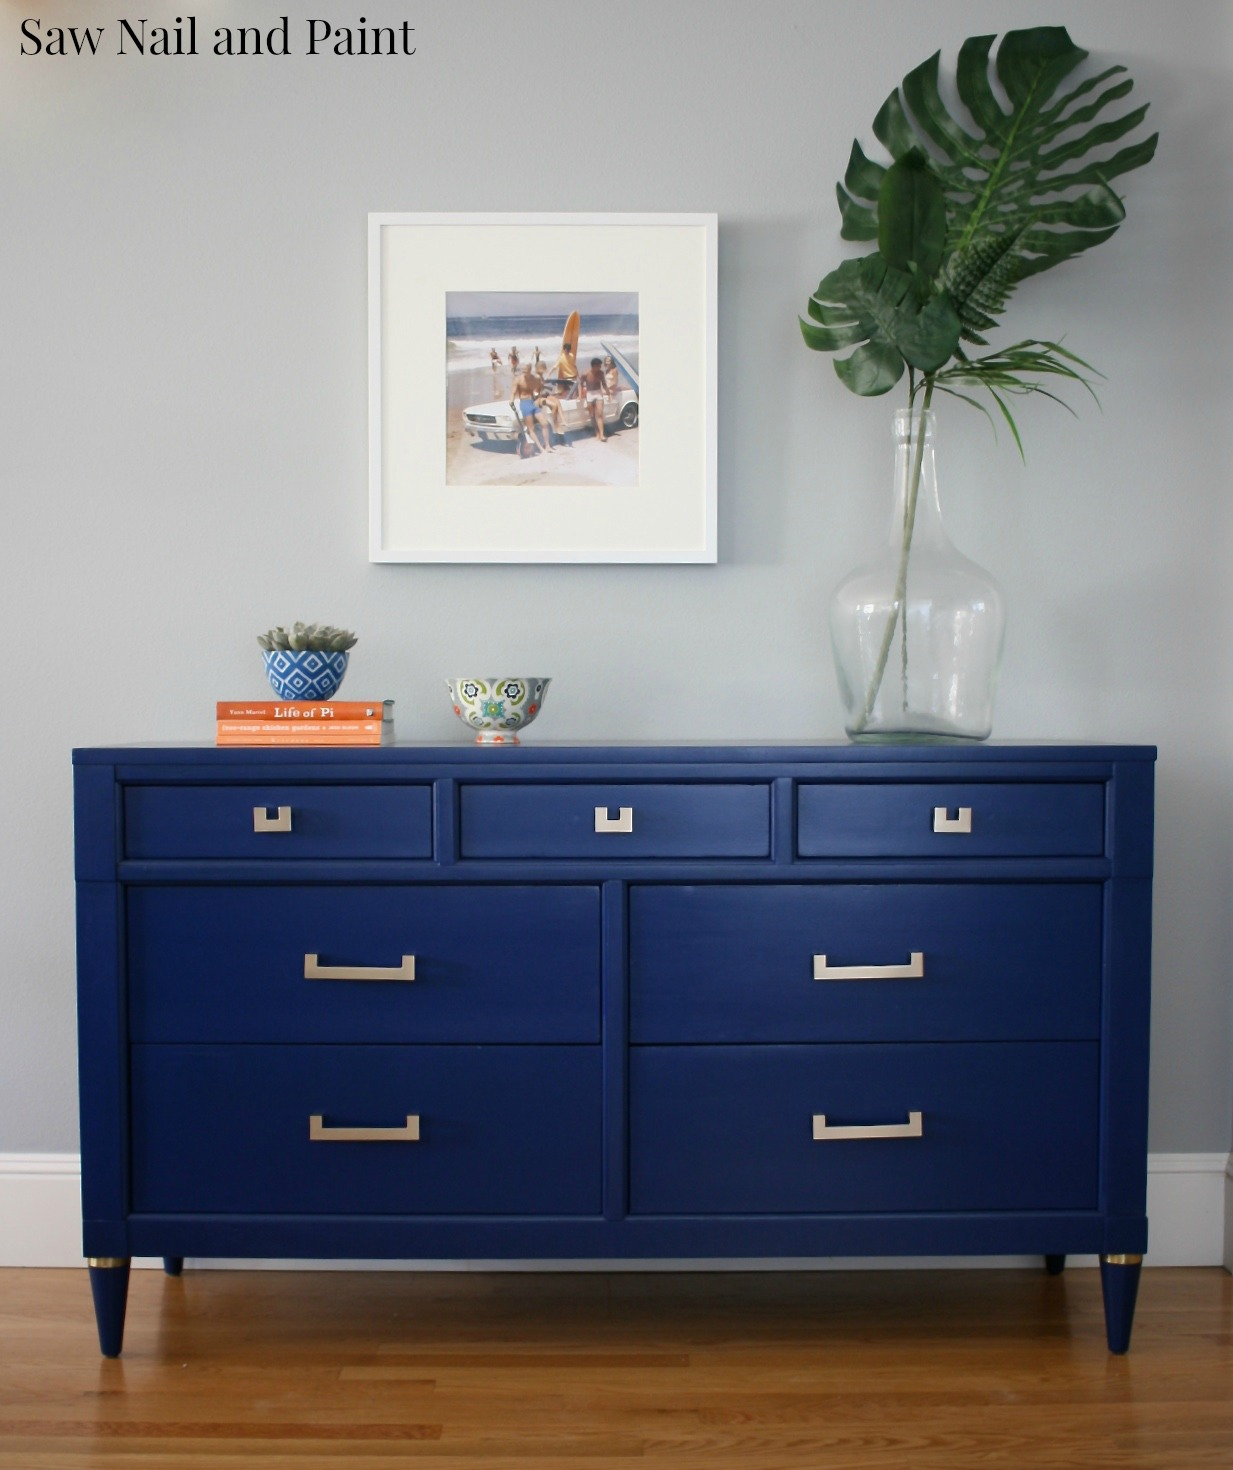 Sapphire blue midcentury dresser saw nail and paint for Navy blue painted furniture